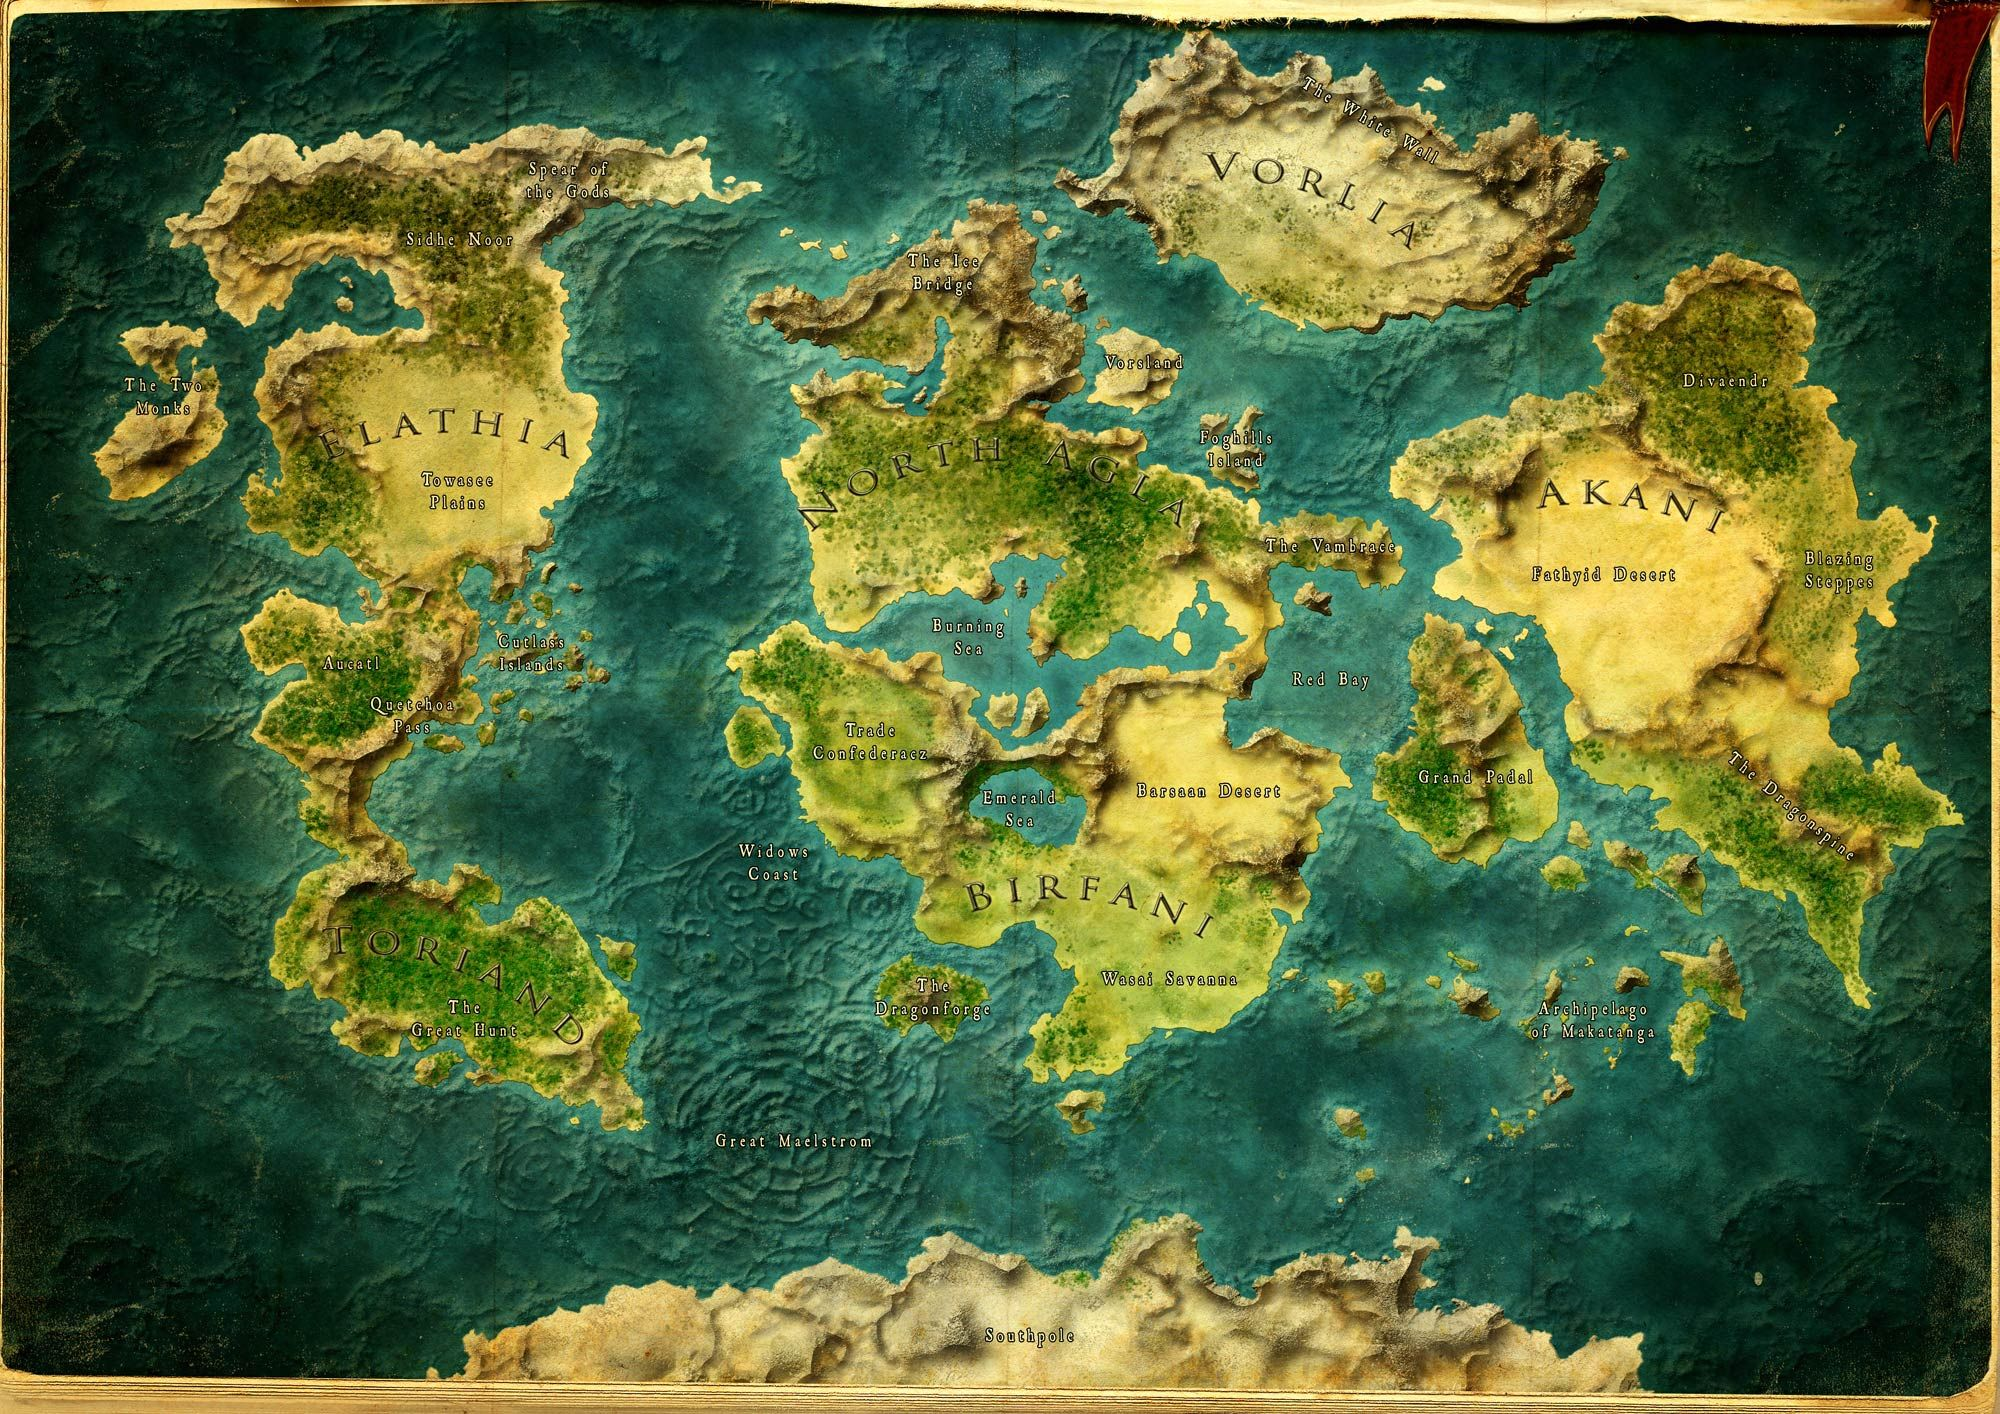 Pin by farris on maps pinterest fantasy map rpg and dungeon maps worldmap by schwarzkreuz on deviantart gumiabroncs Choice Image